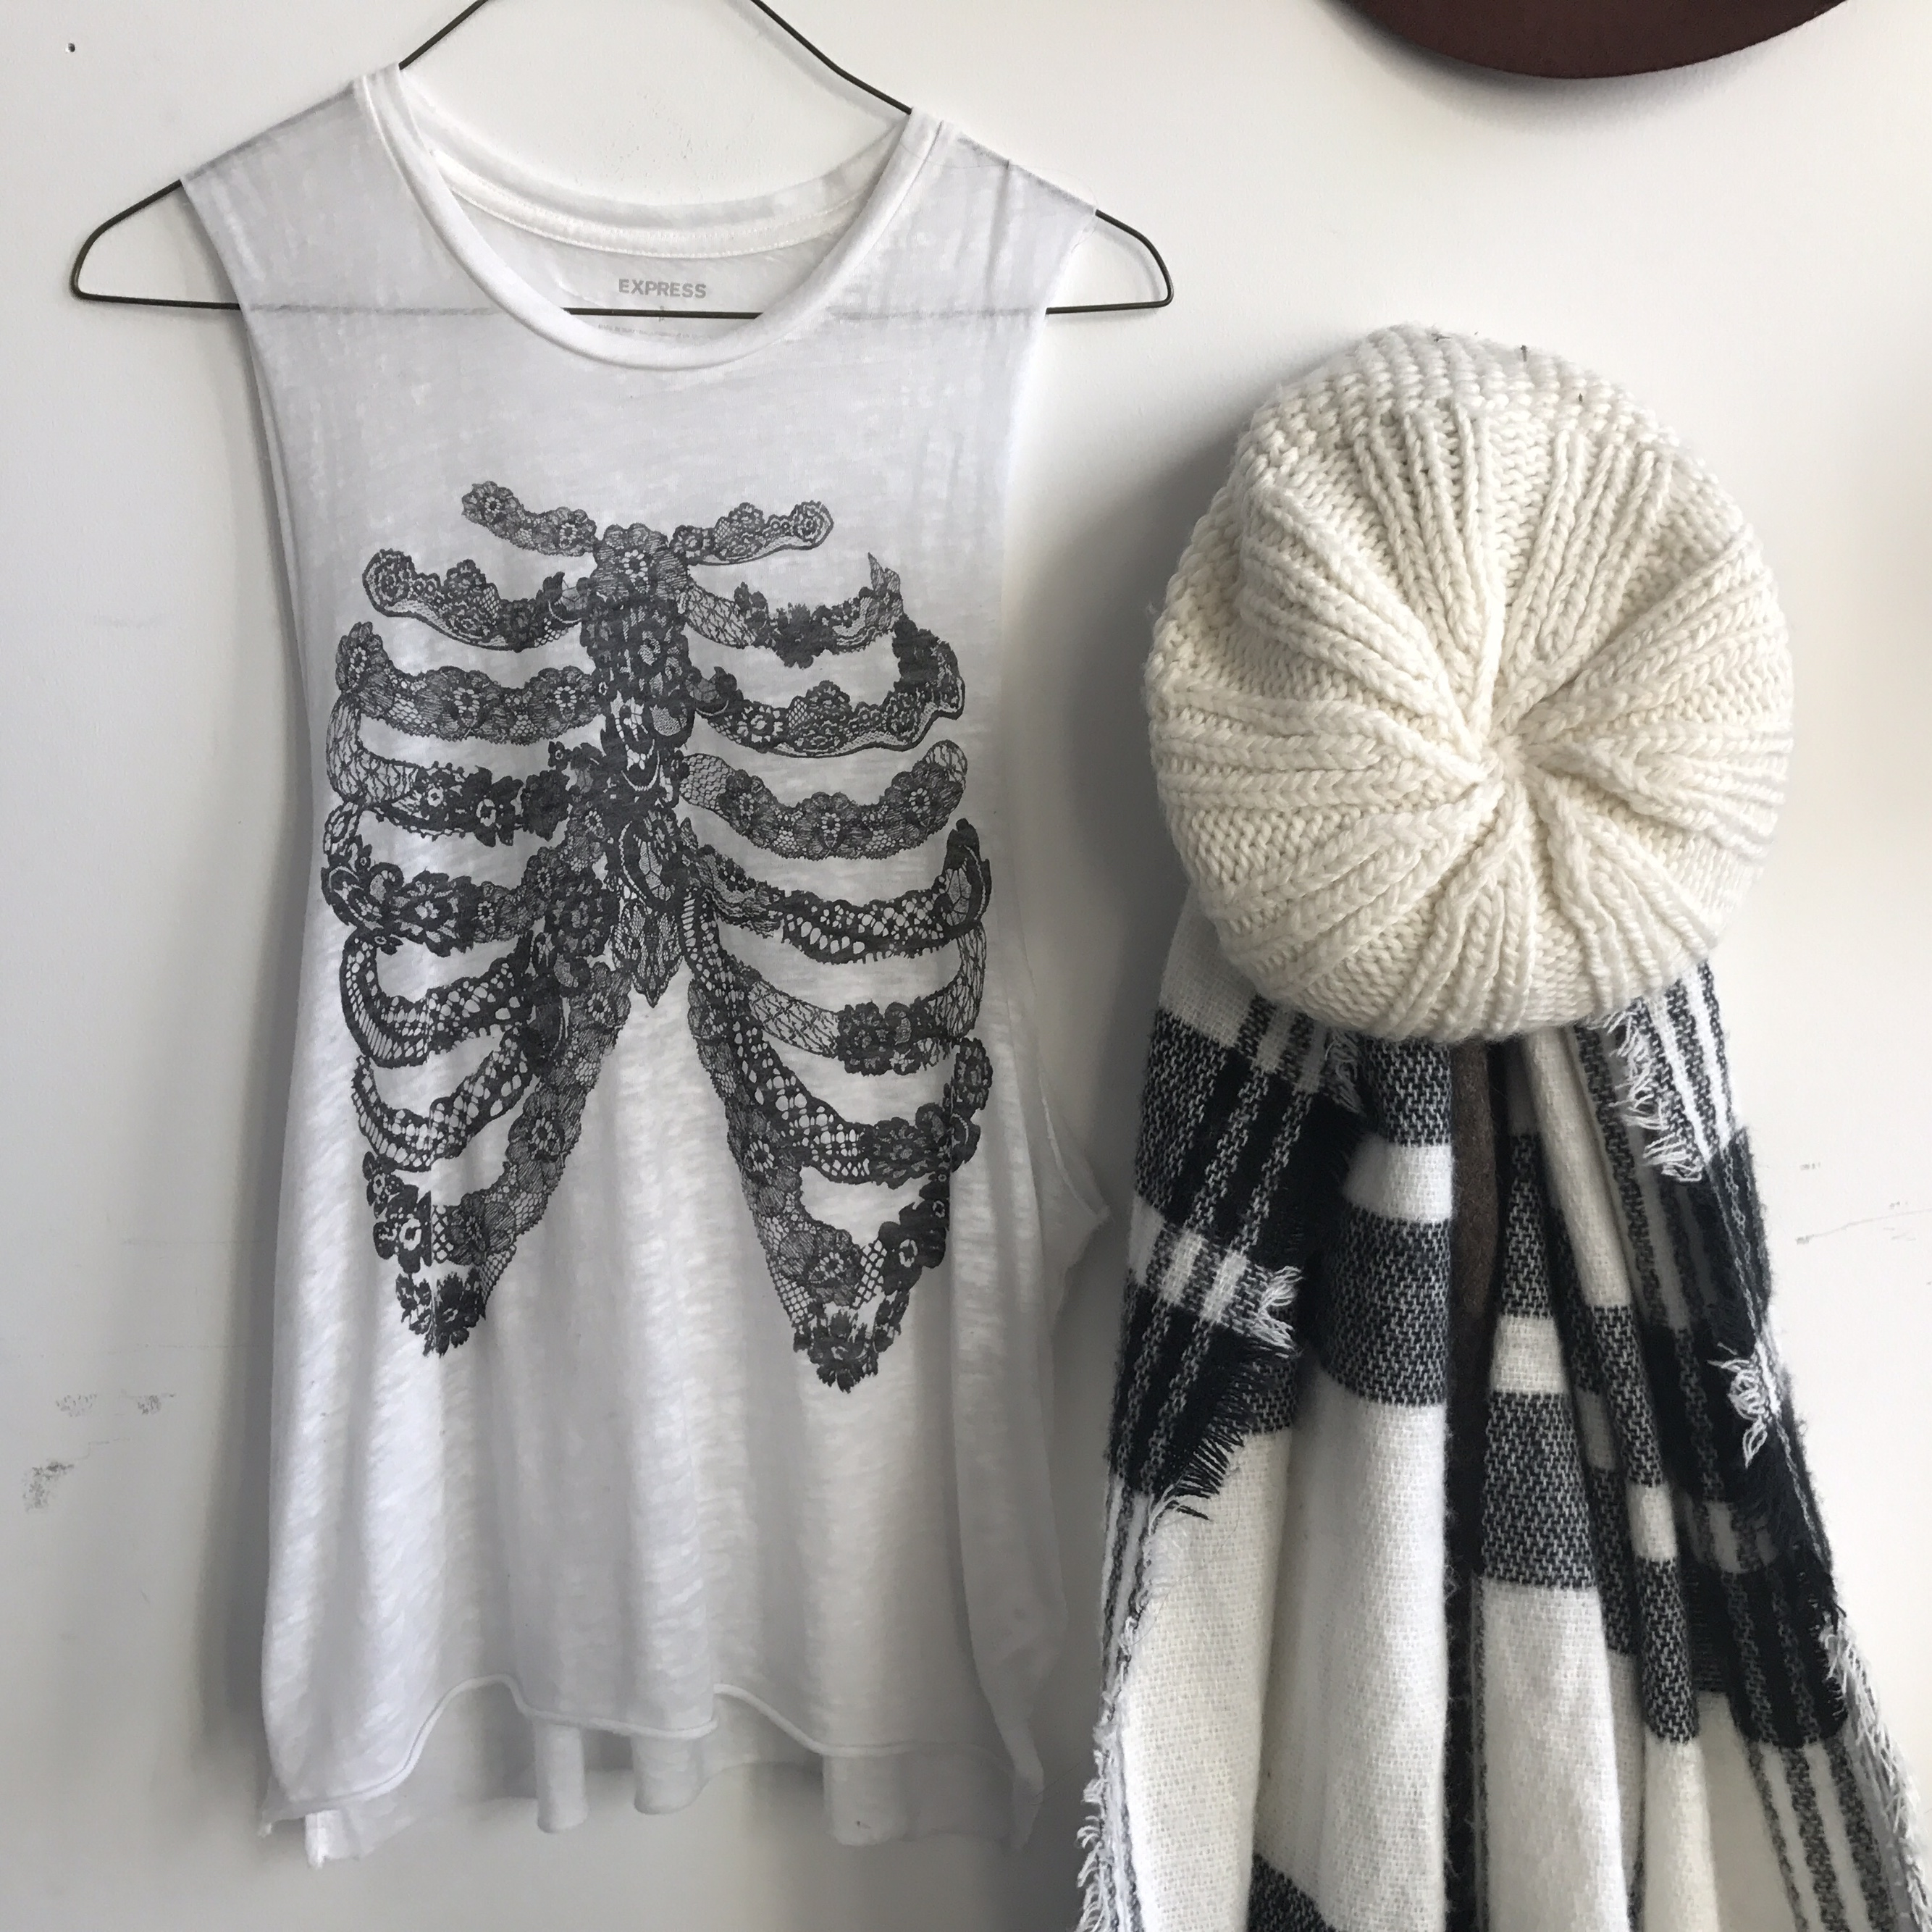 Express skeleton muscle tank  Beautiful skeleton    - Depop